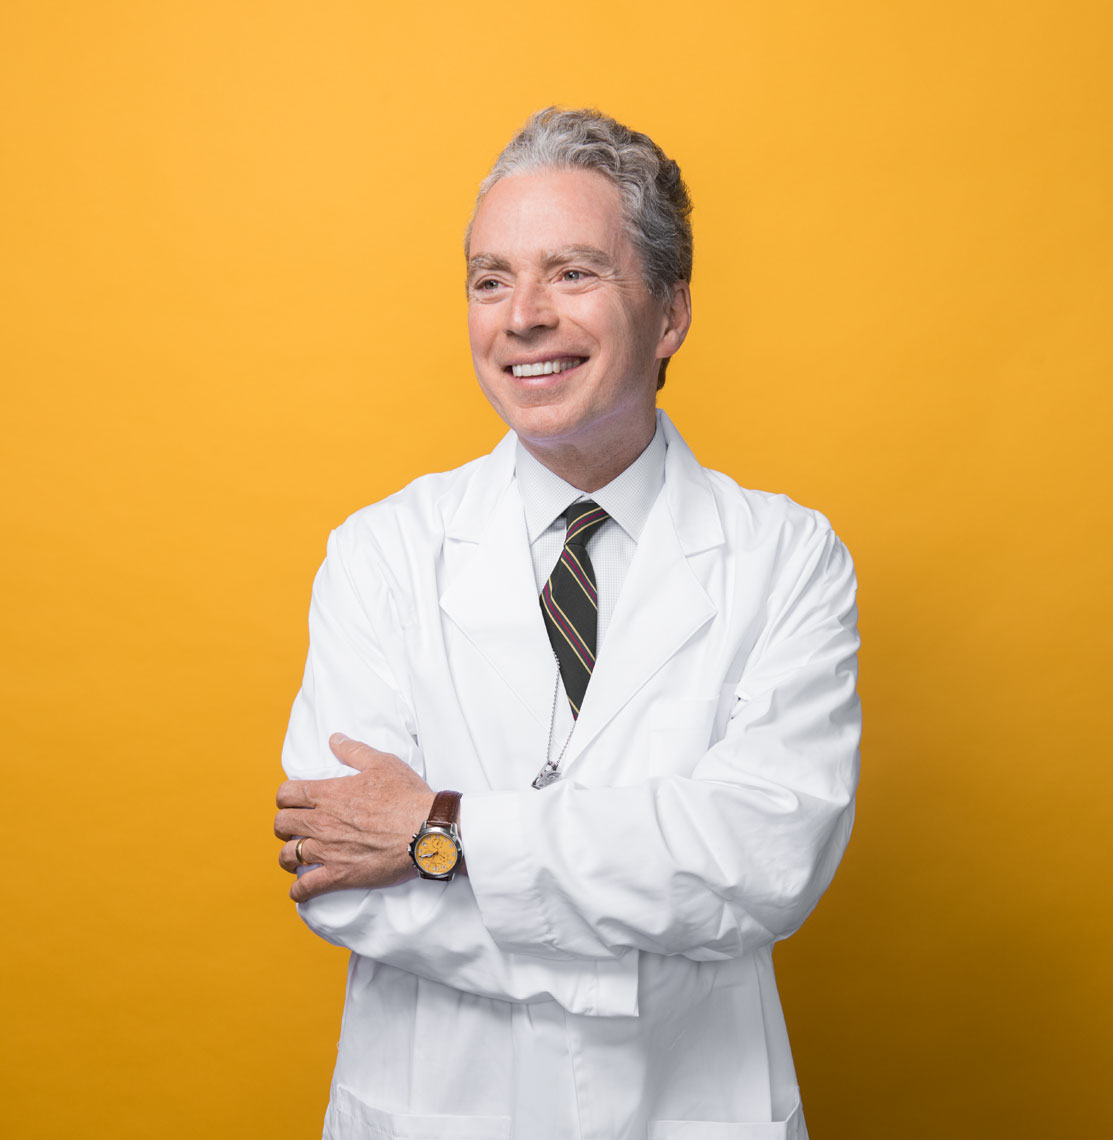 Dr. Paul Gurbel, by healthcare photographer Mike Morgan